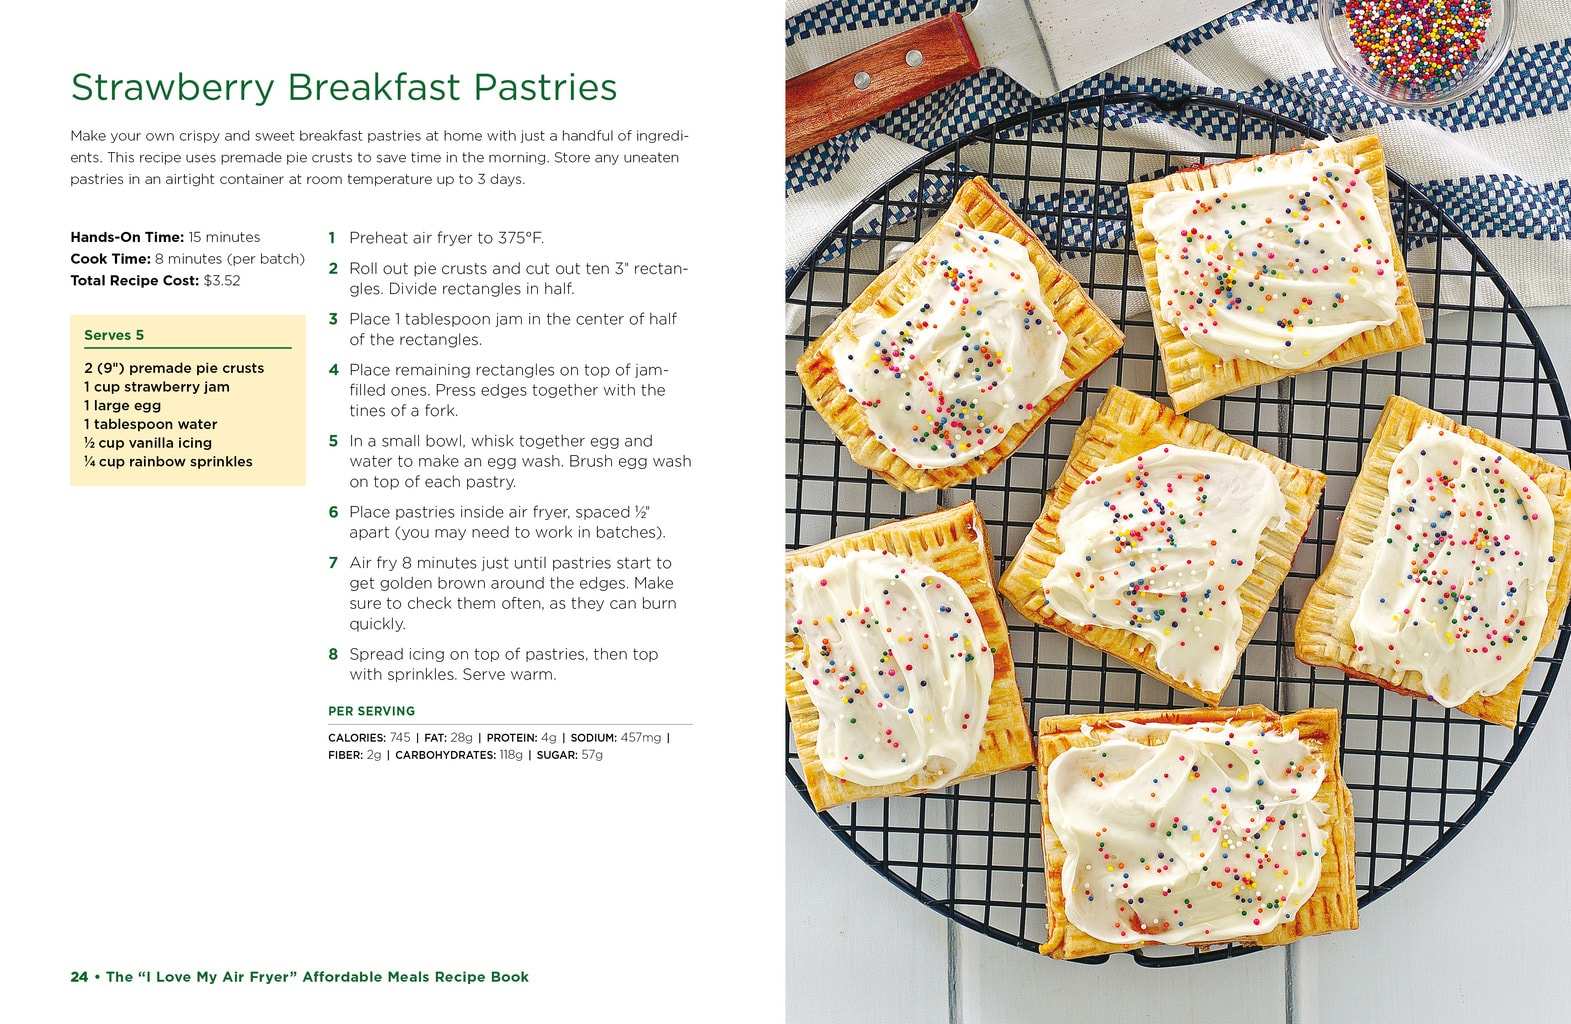 Image of air fryer breakfast pastries next to full recipe.